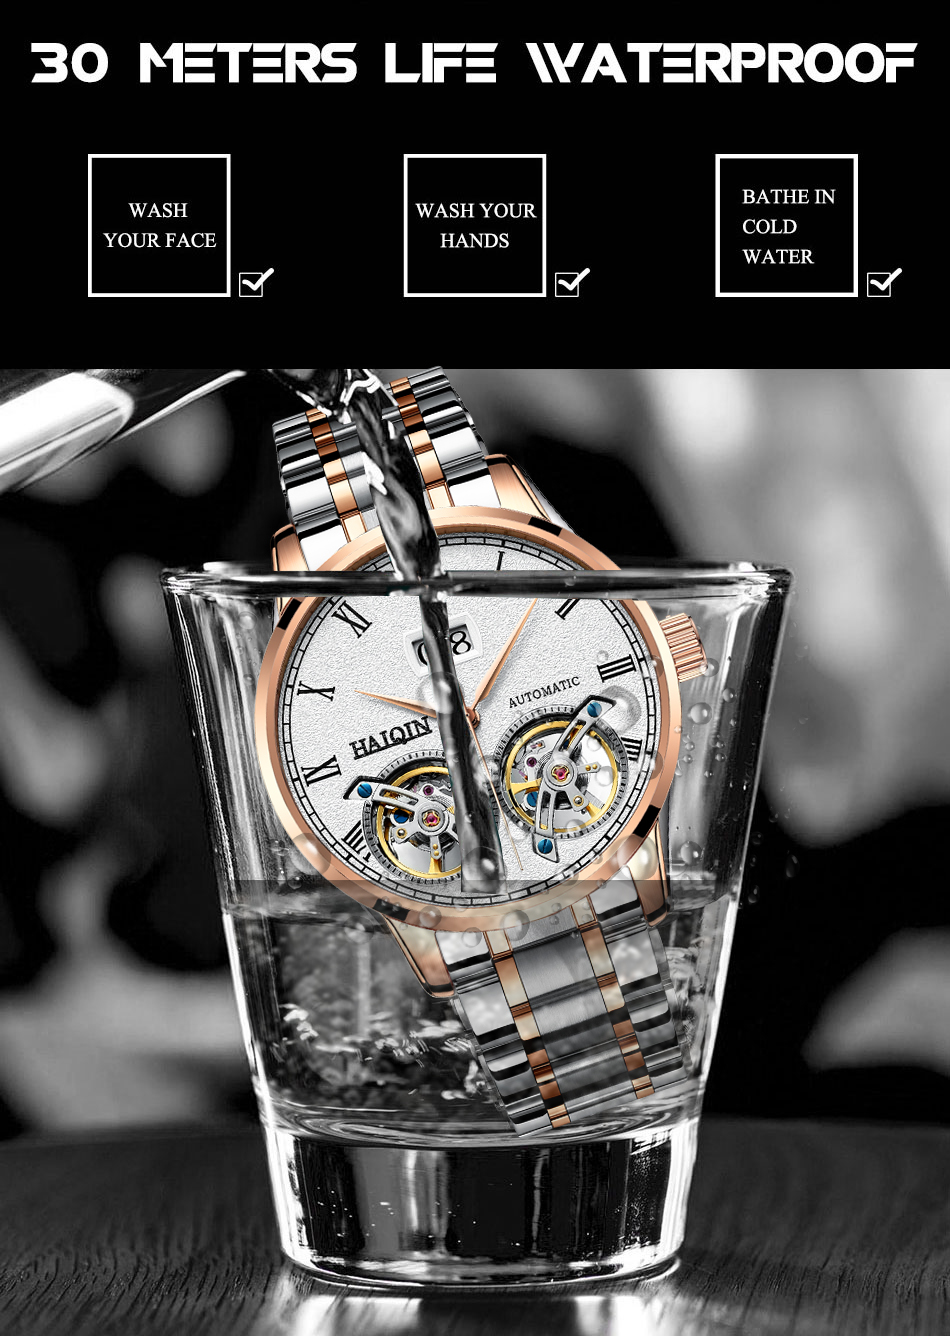 HAIQIN Men's watches Mens Watches top brand luxury Automatic mechanical sport watch men wirstwatch Tourbillon Reloj hombres 2020 HTB1TjuZef1H3KVjSZFBq6zSMXXar